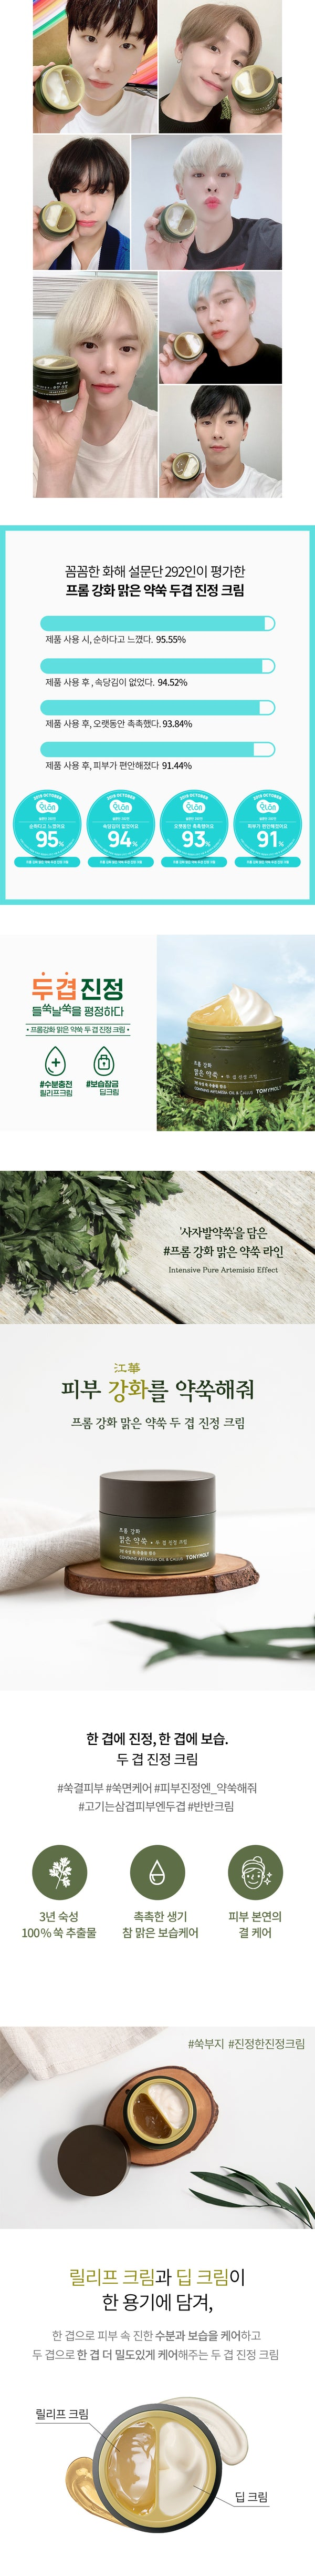 From Ganghwa: Contains Artemisia Oil & Callus Cream